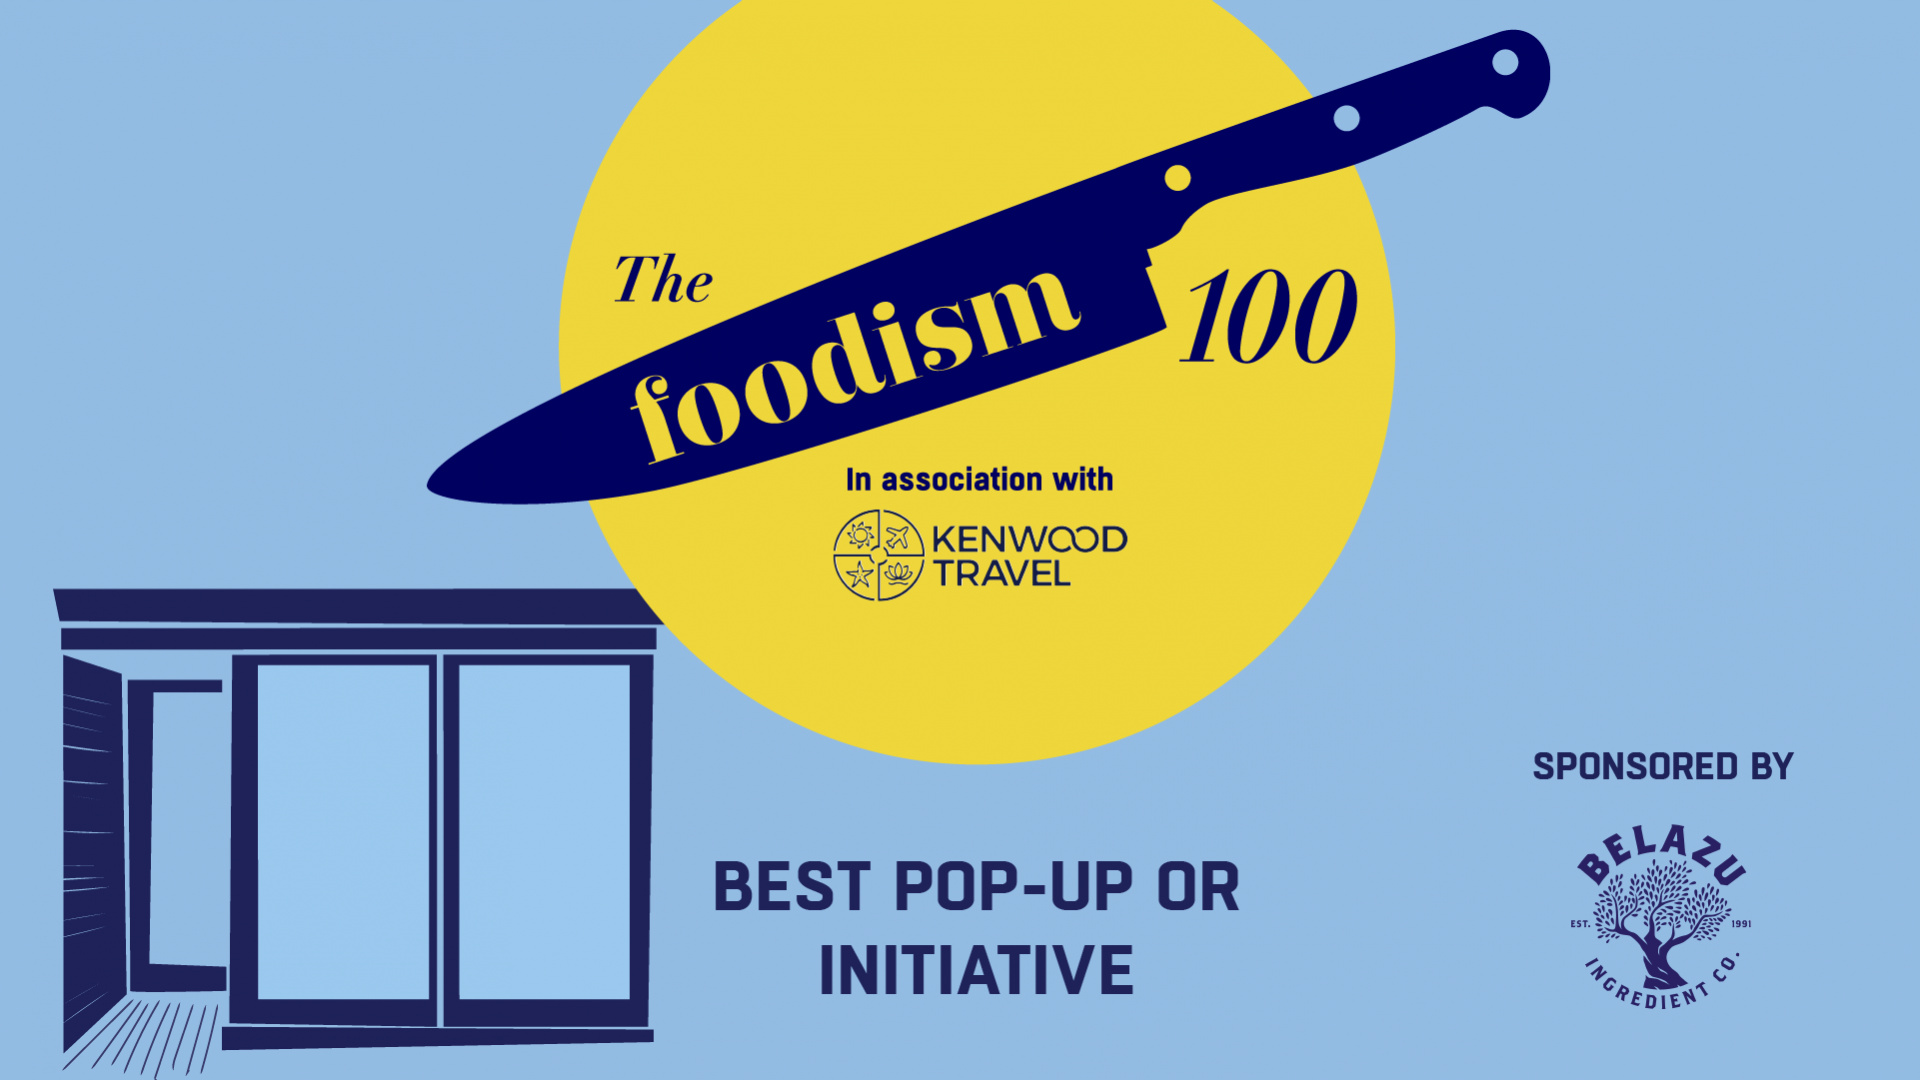 The Foodism 100: Best Pop-Up or Initiative 2019